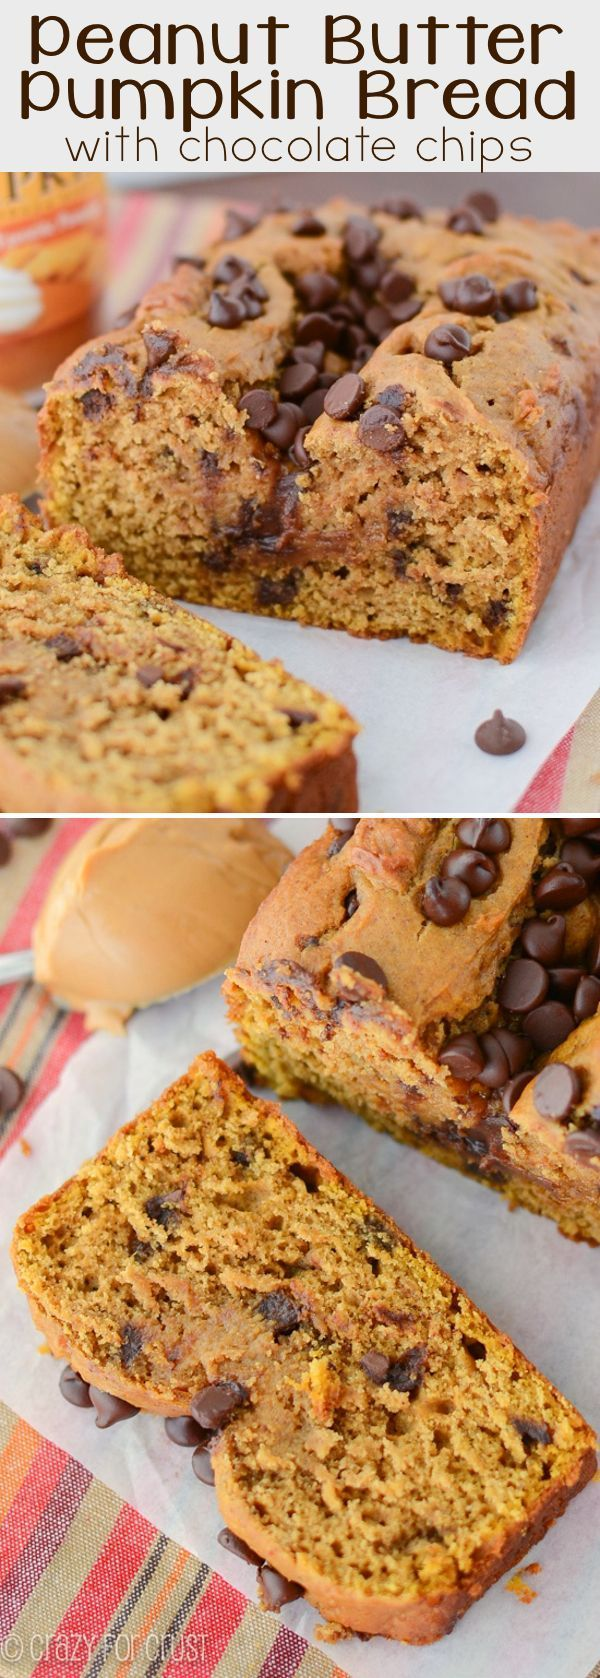 Peanut Butter Pumpkin Bread - this recipe is fabulous! The combination is insanely good, especially with chocolate chips.